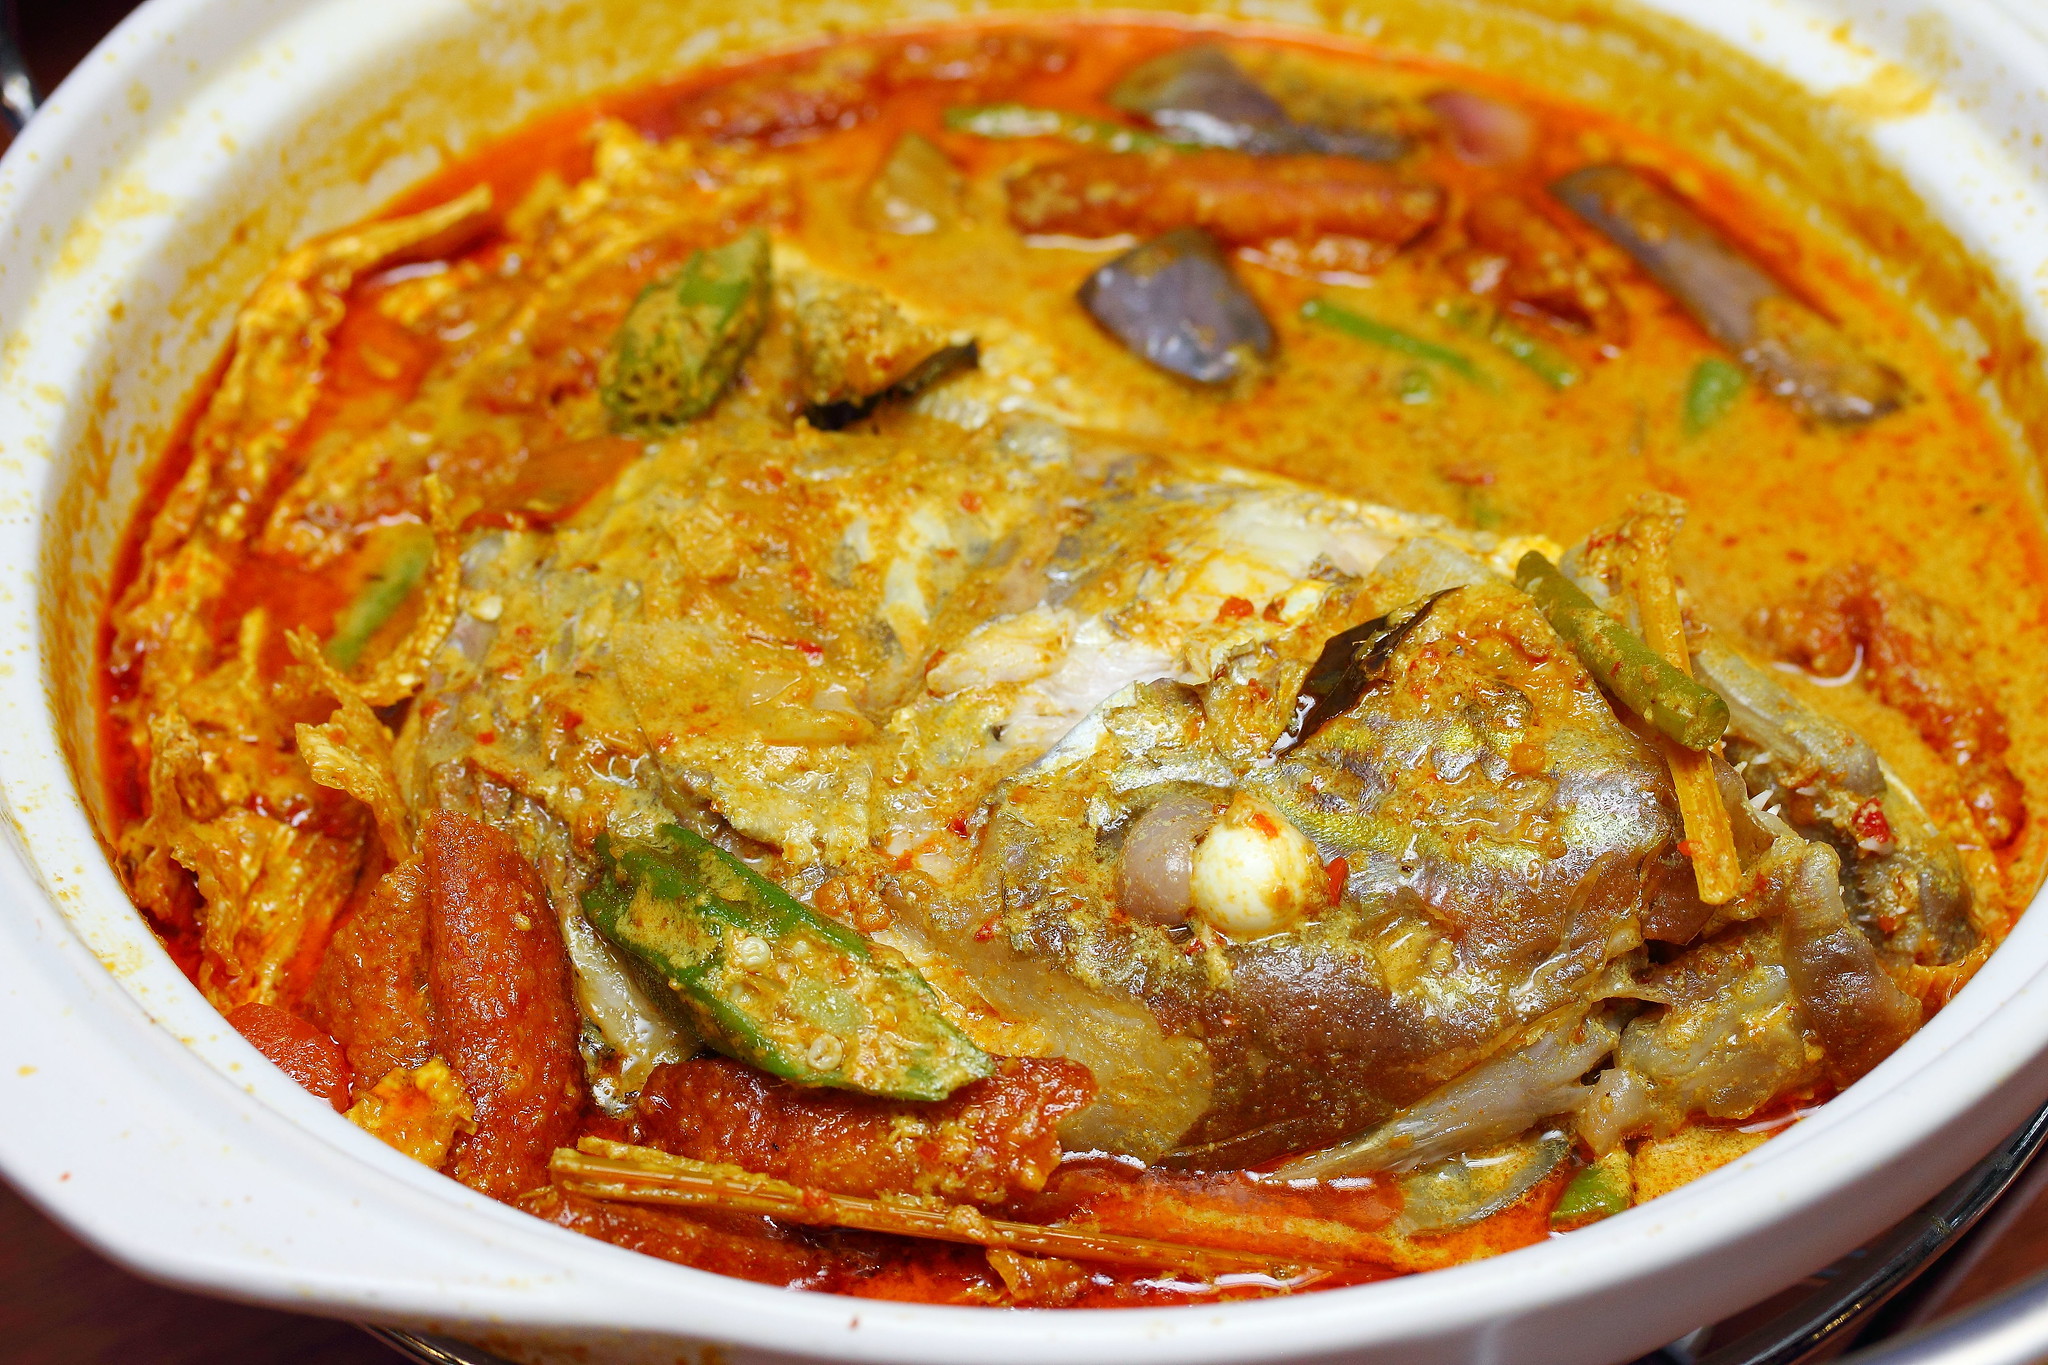 ... Cun Curry Fish Head (渔村砂煲咖喱鱼头) @ Upper Paya Lebar Road